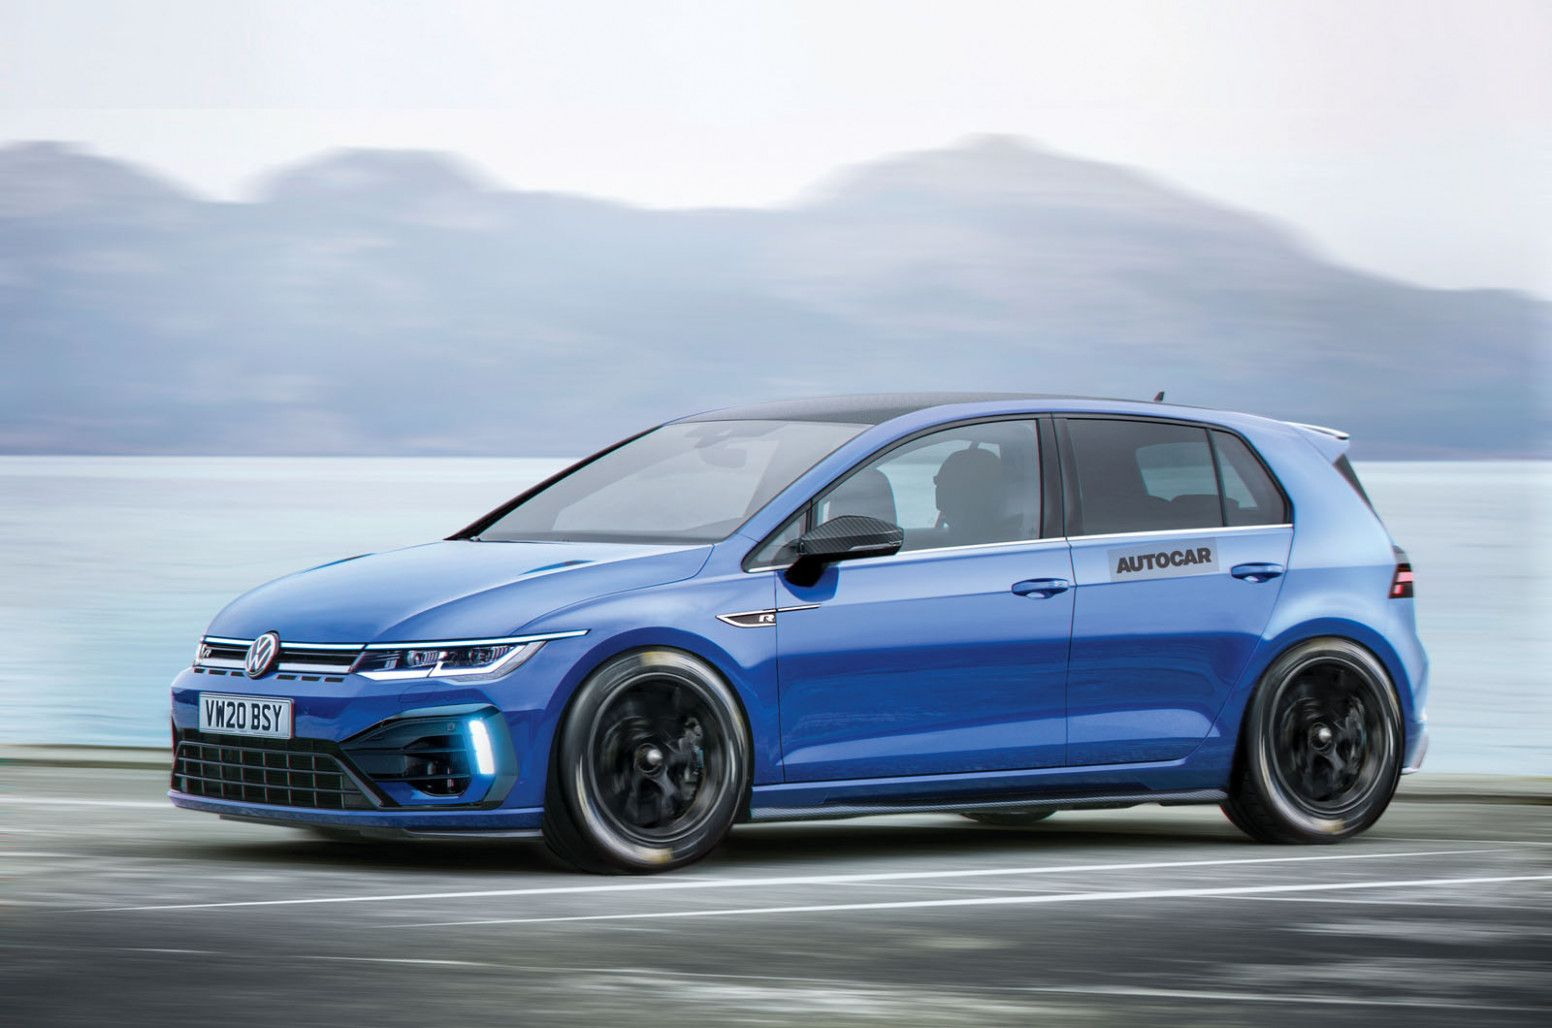 2020 Volkswagen Golf R Horsepower In 2020 Volkswagen Volkswagen Golf R Volkswagen Golf